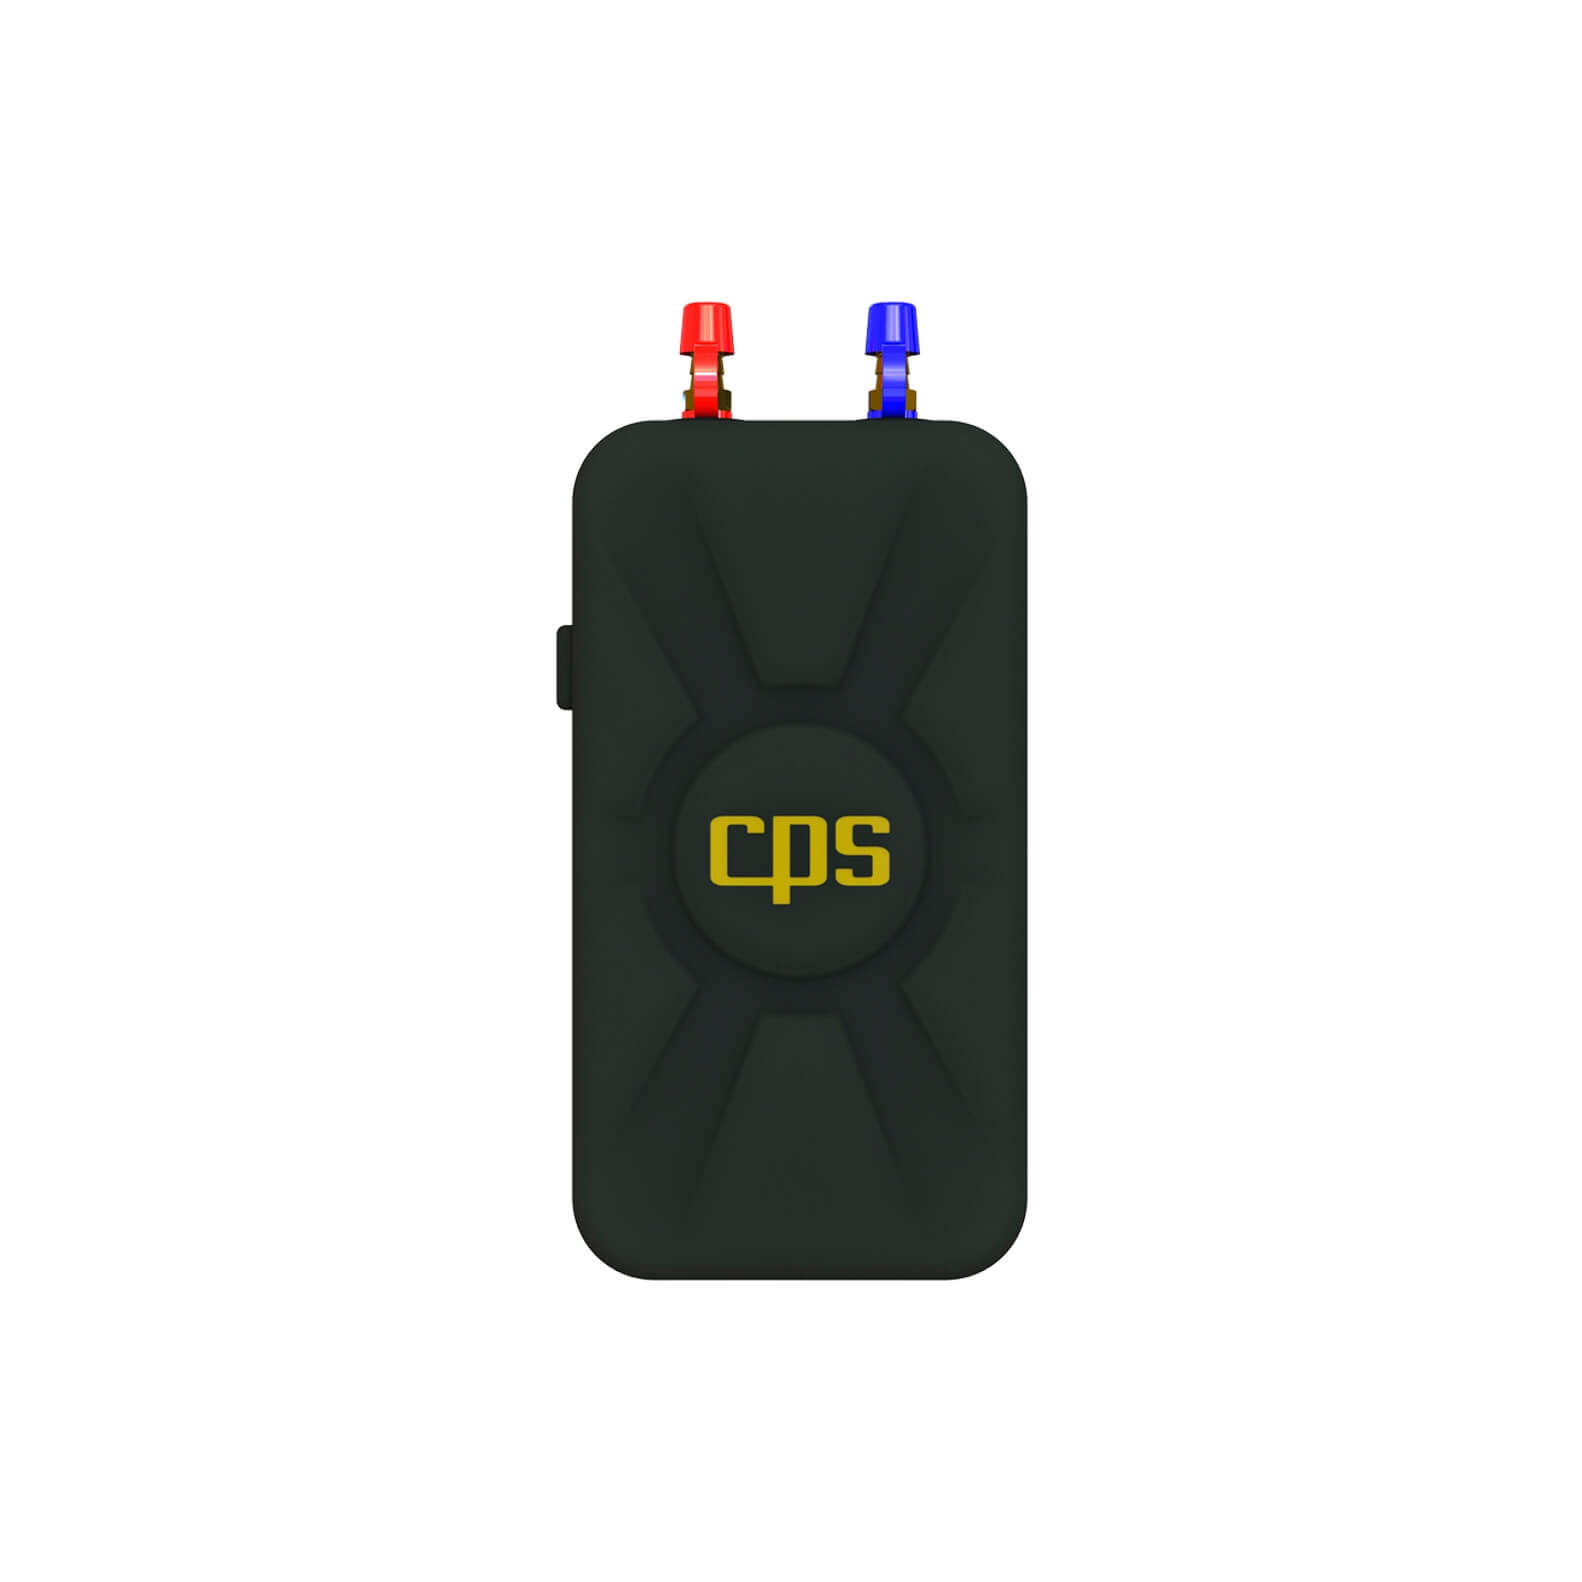 CPS SPM-100 Dual Port Wireless Manometer for Differential Pressure